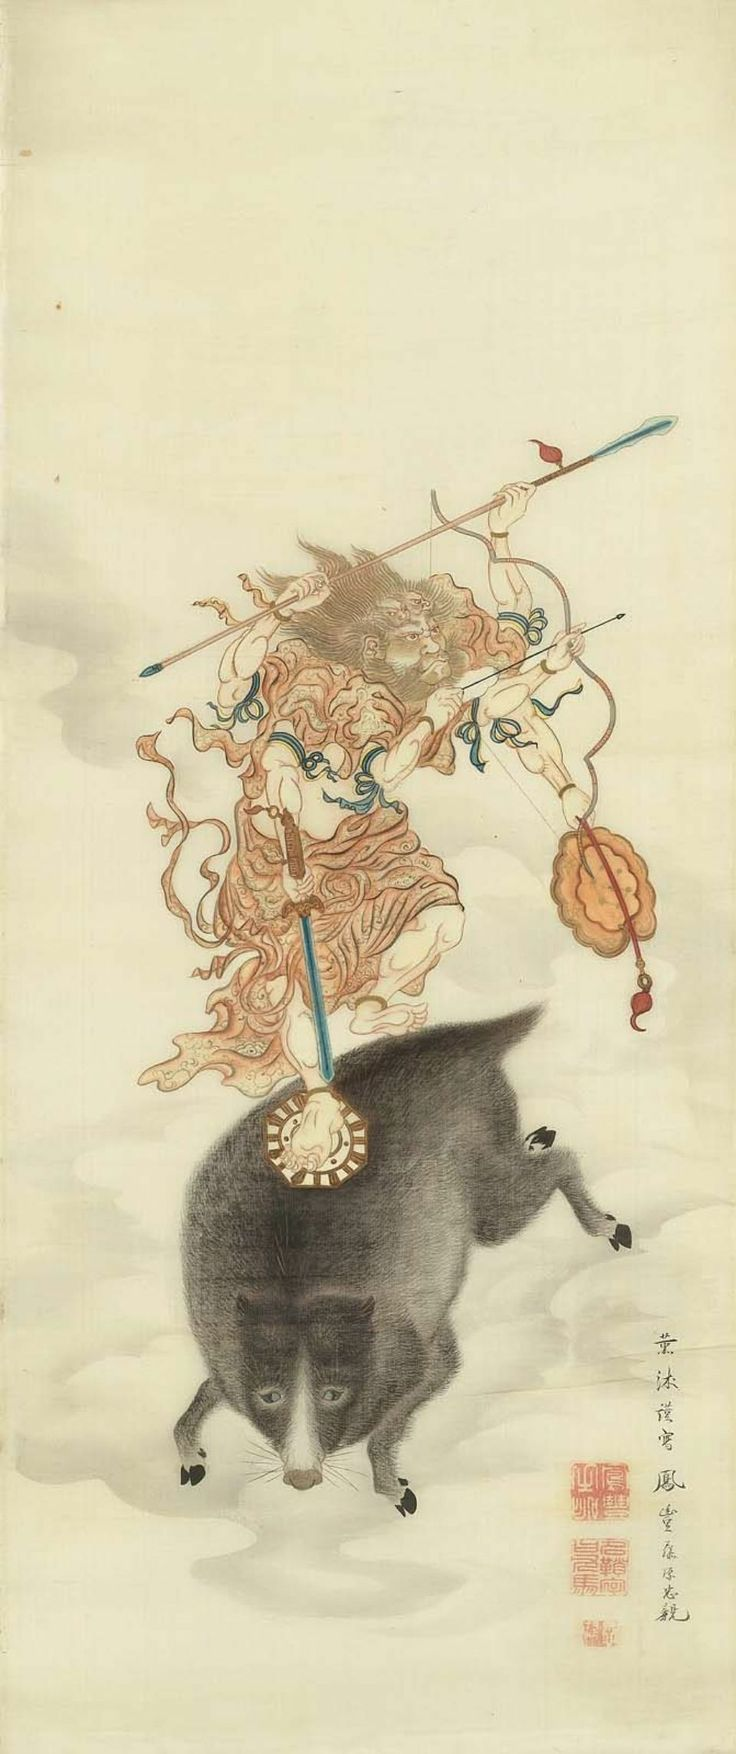 摩利支天像 Marishiten (Buddhist god of war), Kyoto, mid-19th century - Tadachika